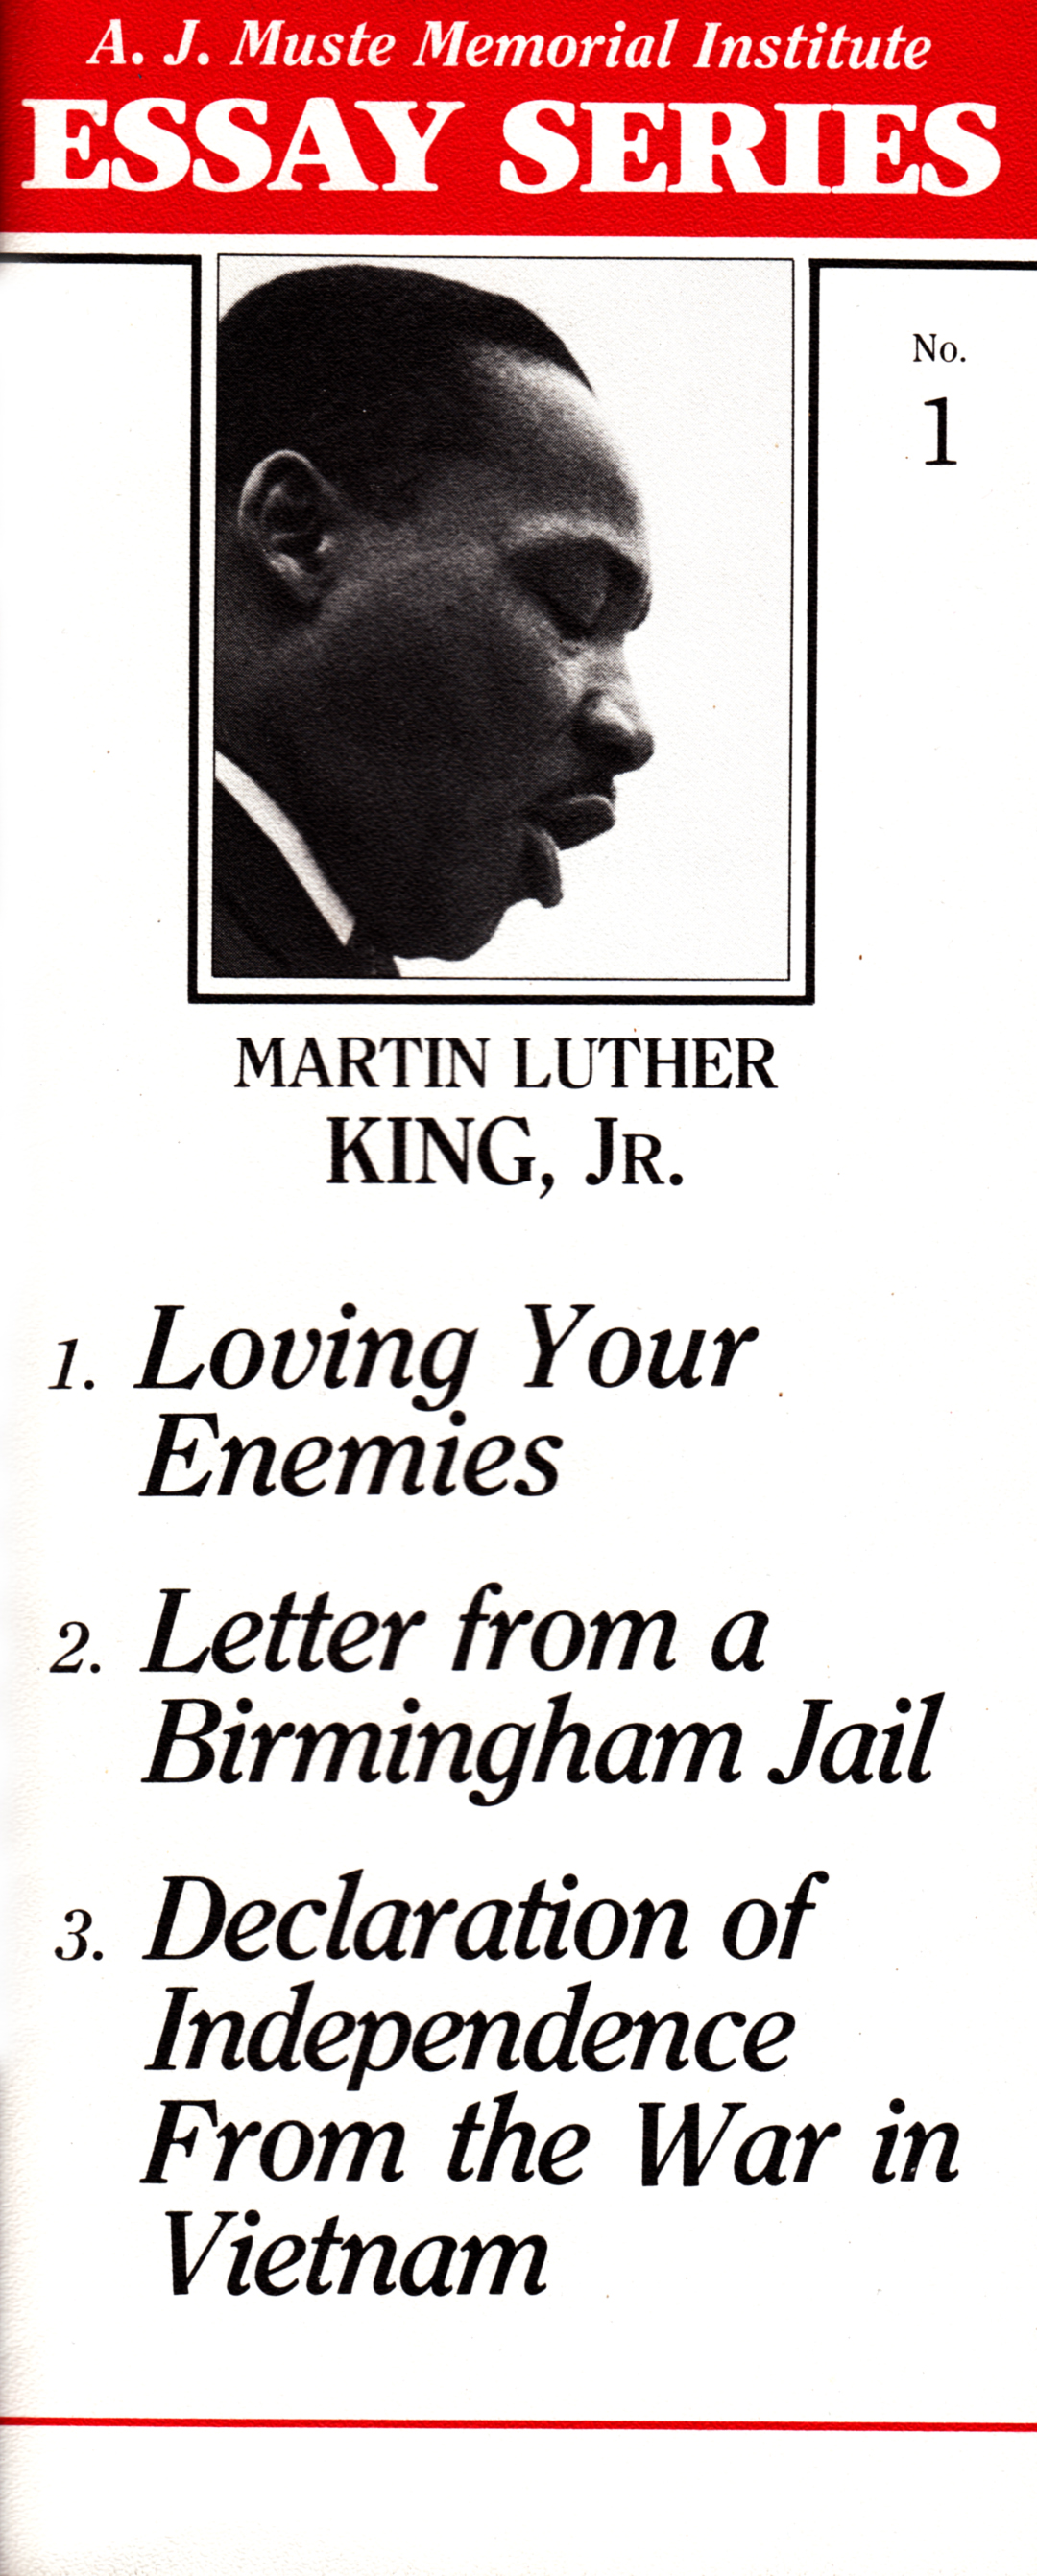 martin luther king jr letter from birmingham jail essay Letter from birmingham jail essay letter from the birmingham jail by martin luther king, jr martin luther king jr's letter from birmingham jail and.